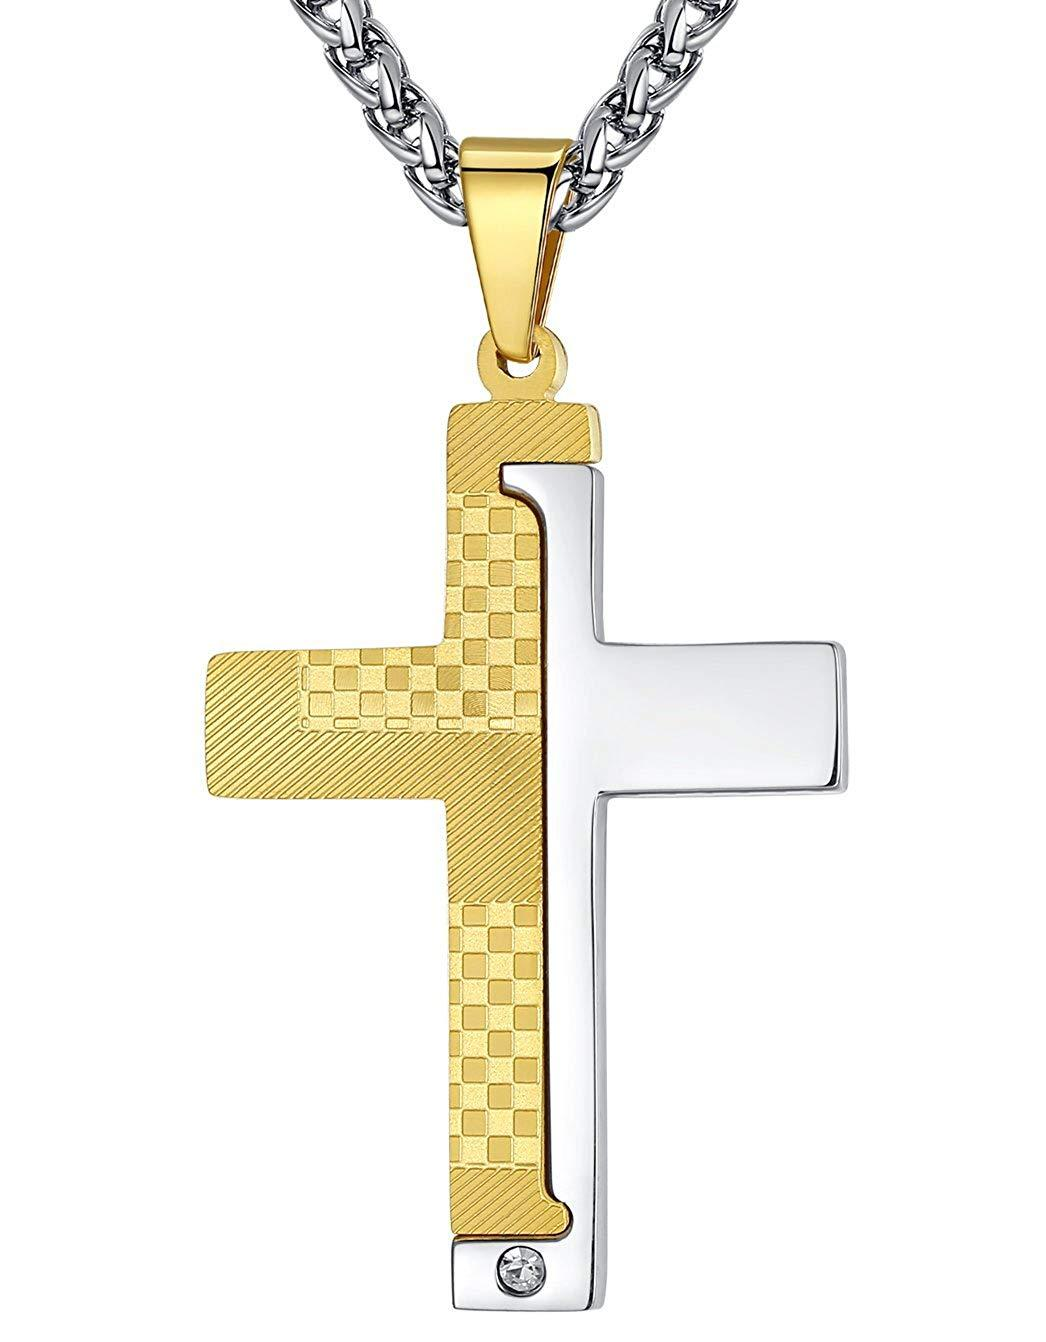 "Aoiy Men's Stainless Steel 2-Tone Cross Pendant Necklace, 24"" Wheat Link Chain, ggp146ji"